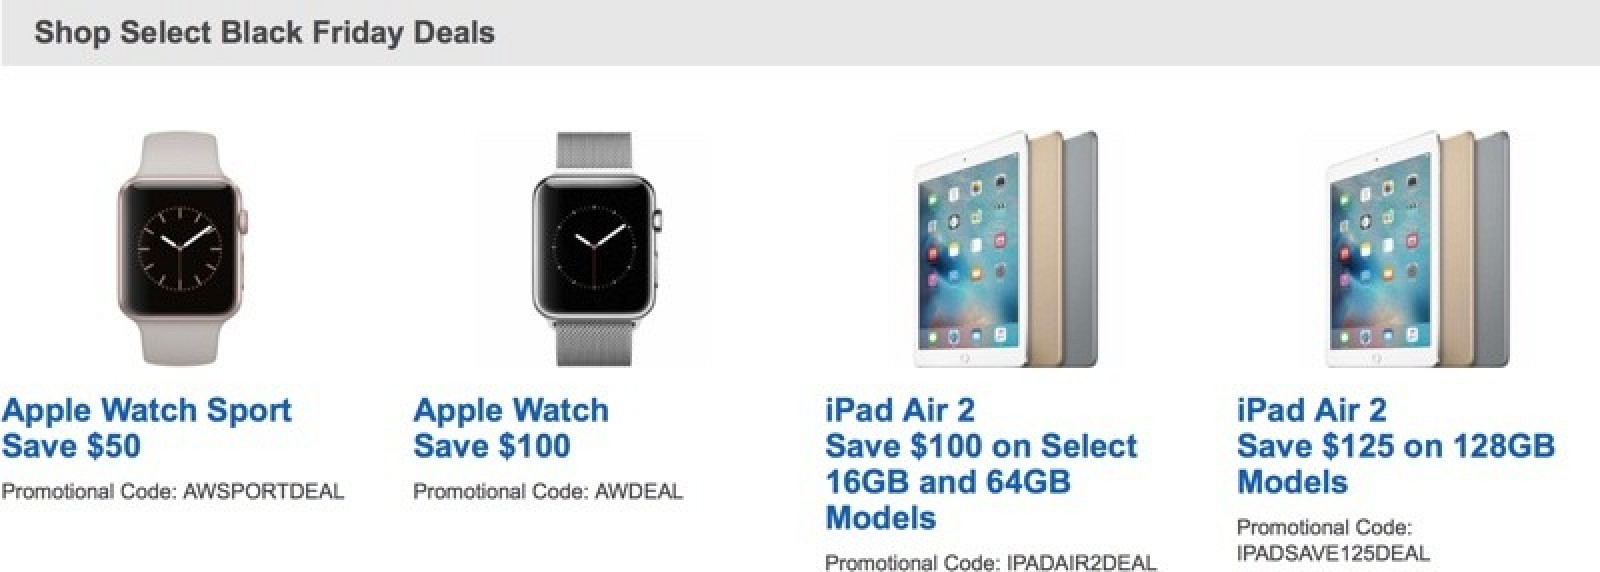 deals image all they friday at gordonkelly this iphones via watches there bestblackfriday apple how screenshot ipad credit sites target good are on black standout